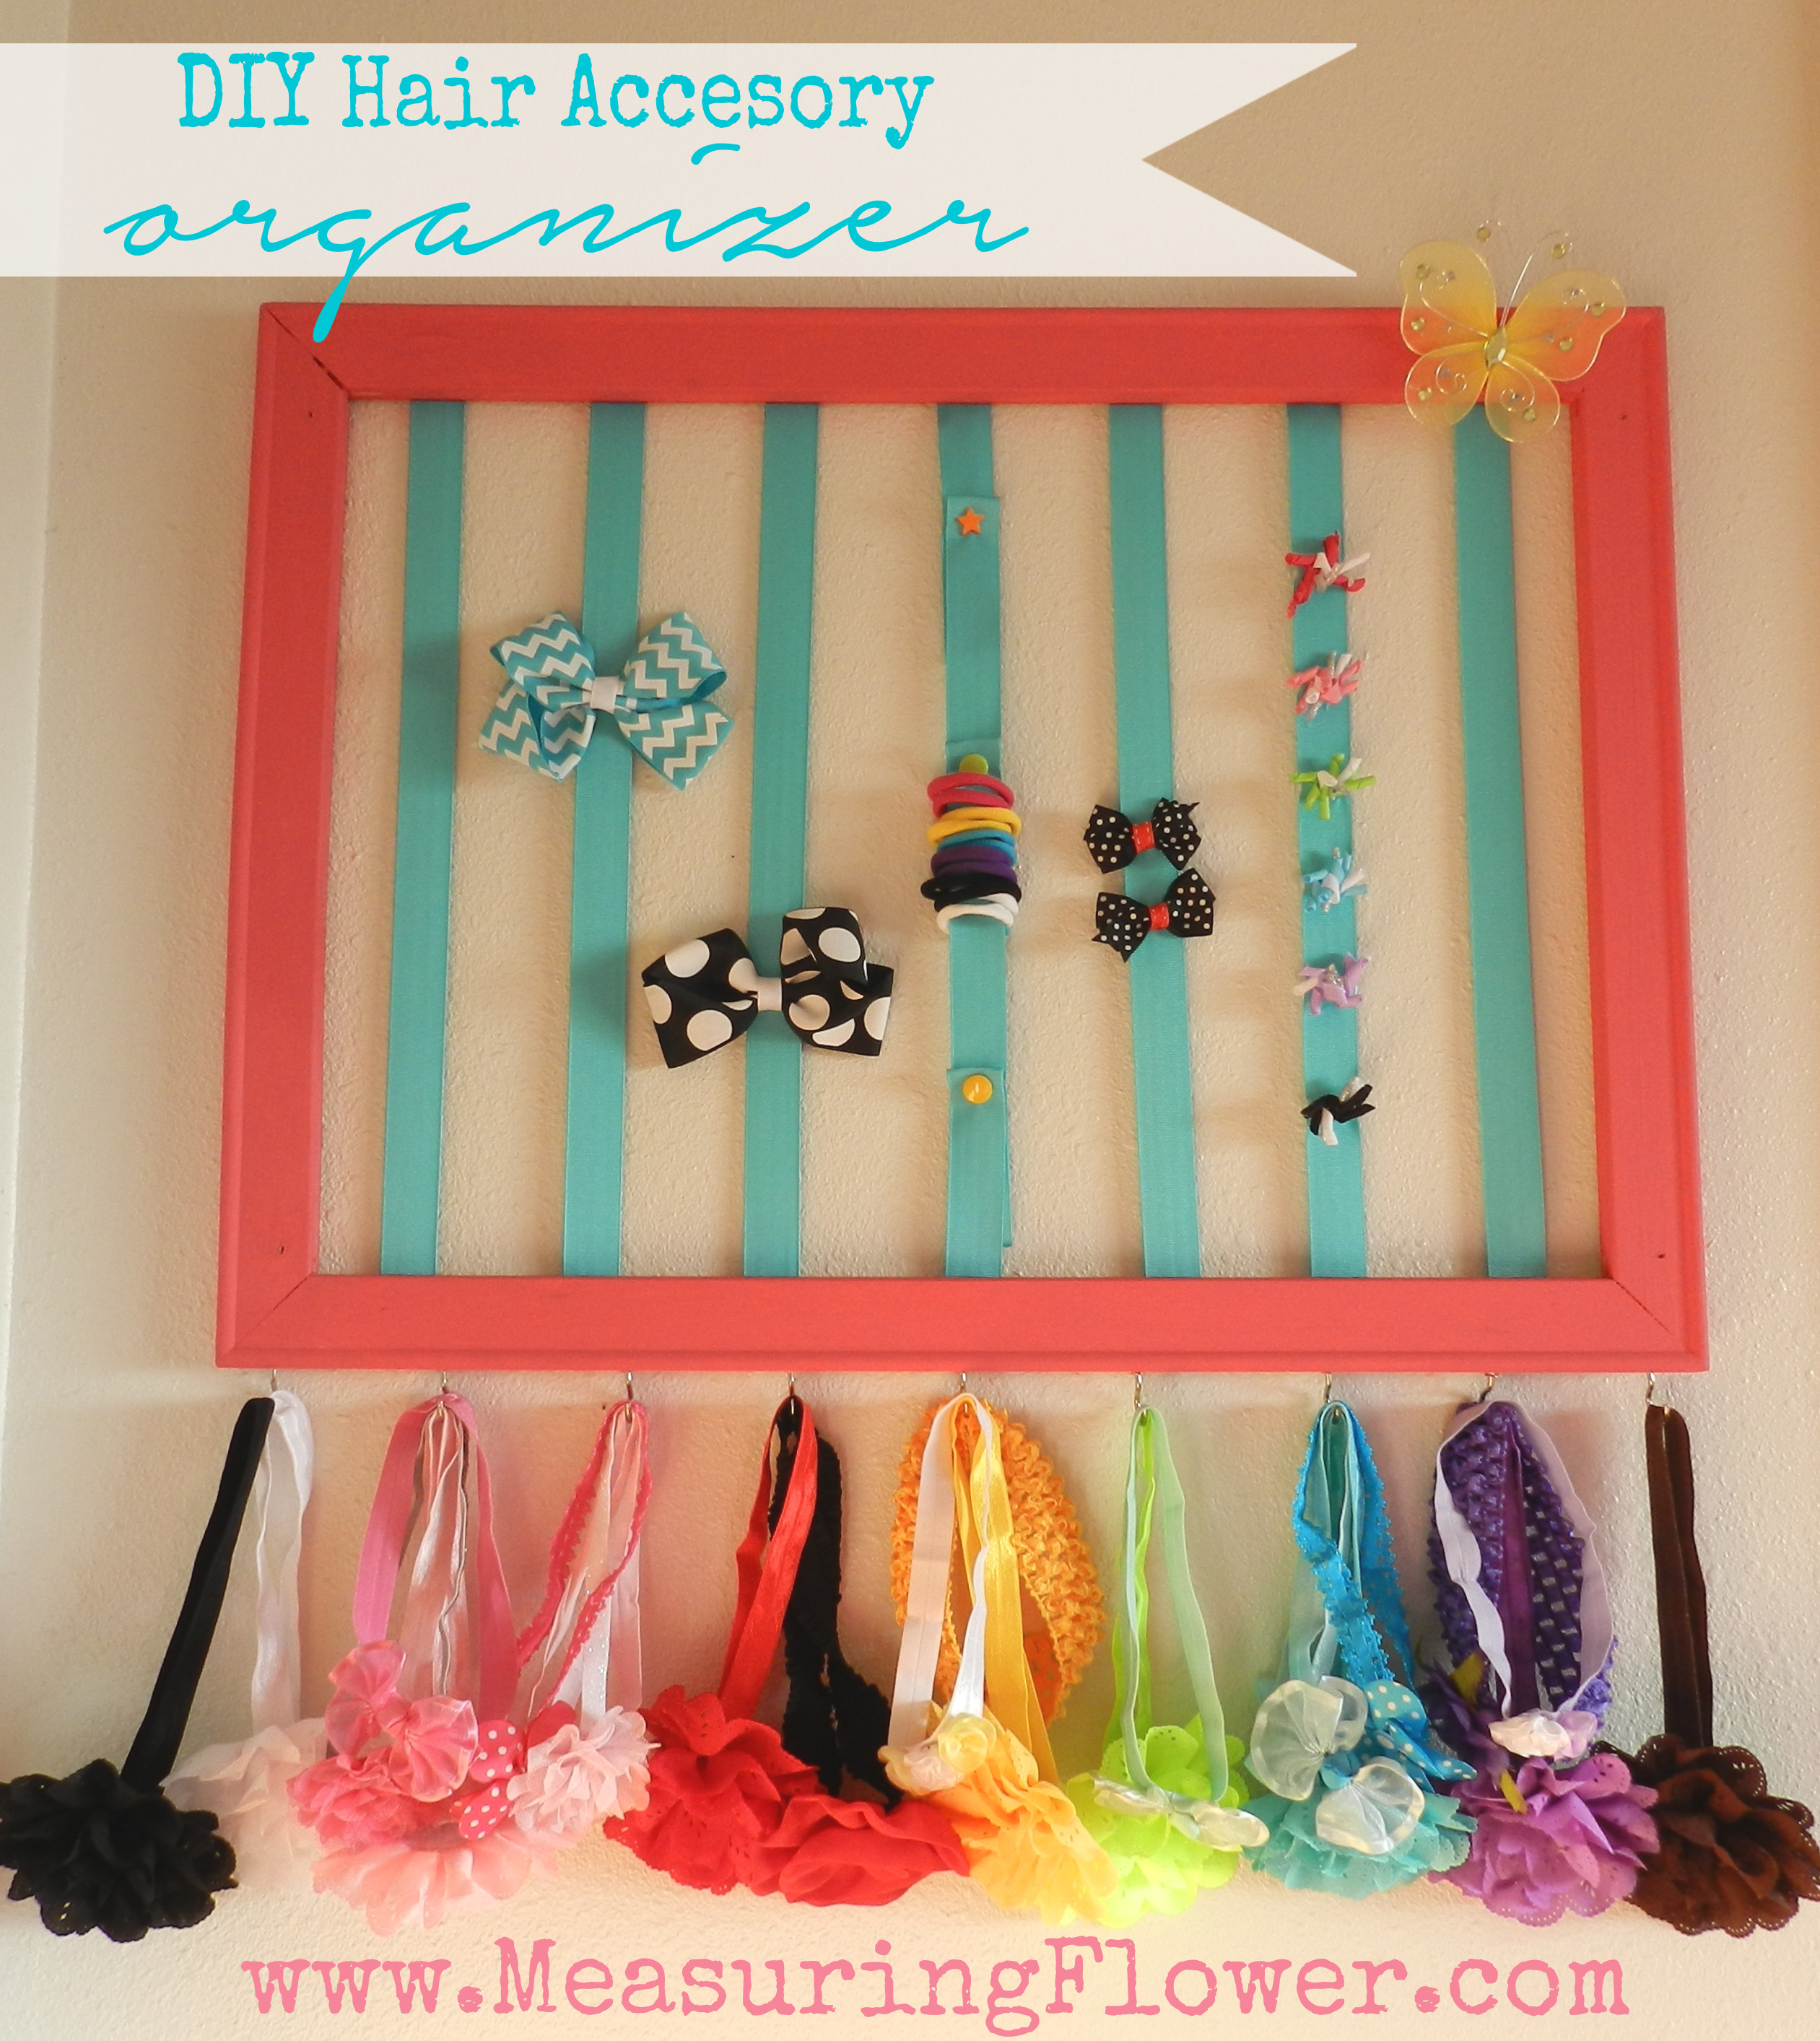 Best ideas about Hair Accessories Organizer DIY . Save or Pin DIY Hair Accessory Organizer for Baby and Little Girls Now.